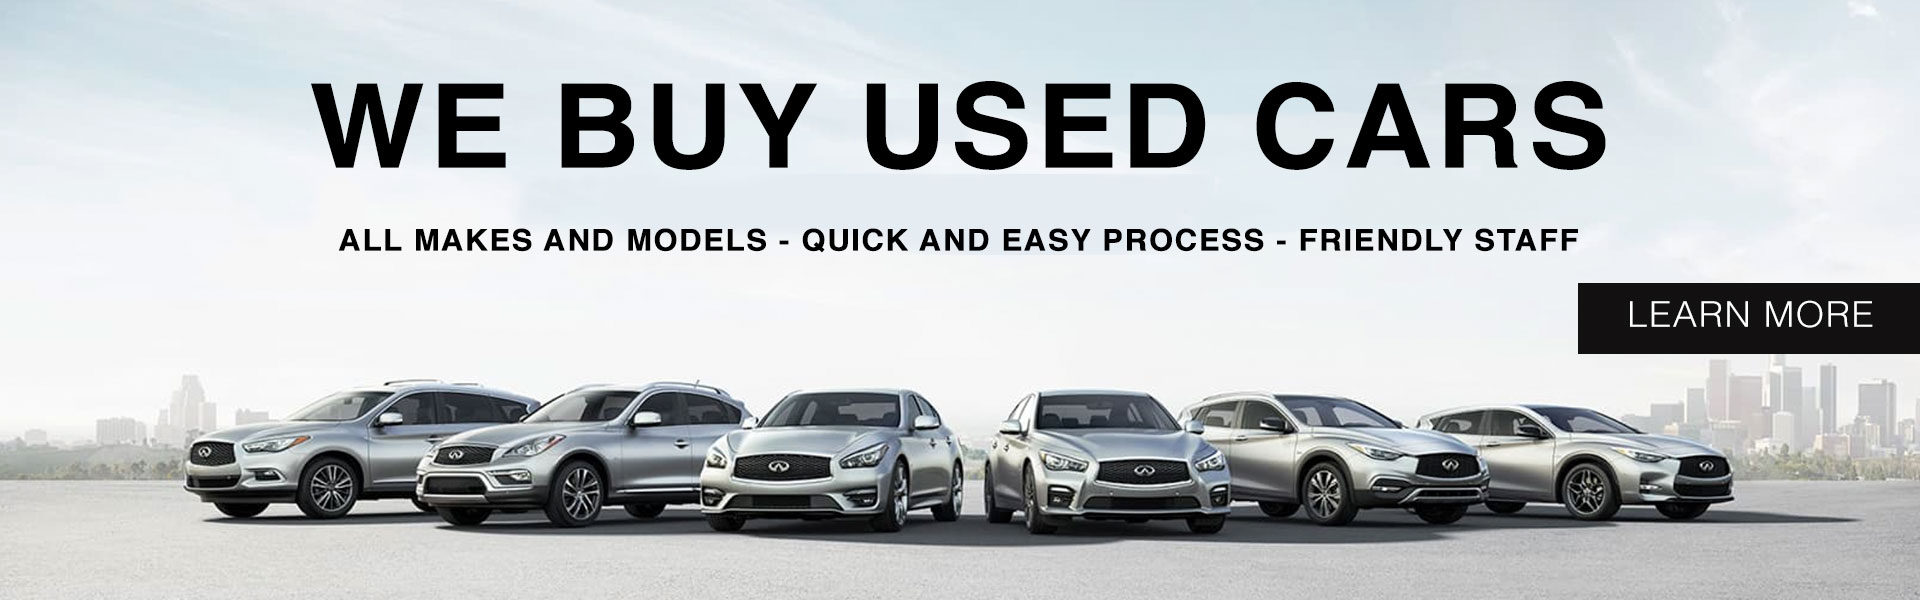 Used Cars Banner